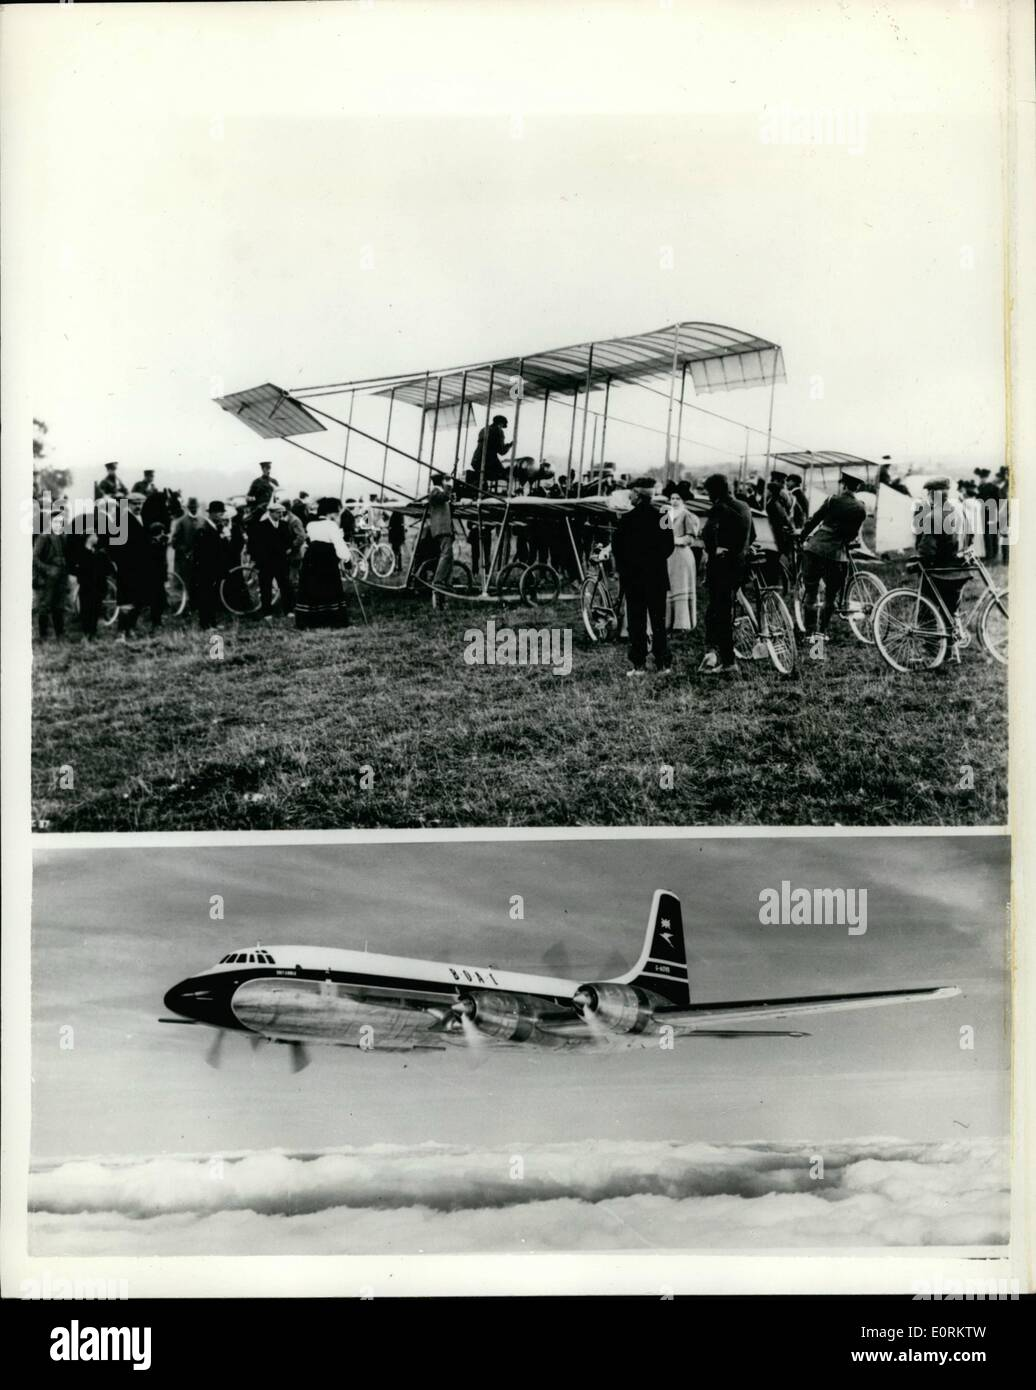 Jan. 01, 1960 - Ancient and Modern, Fifty Years if Aviation, The Boxkite - and the Bristol Britannia..The famous Stock Photo